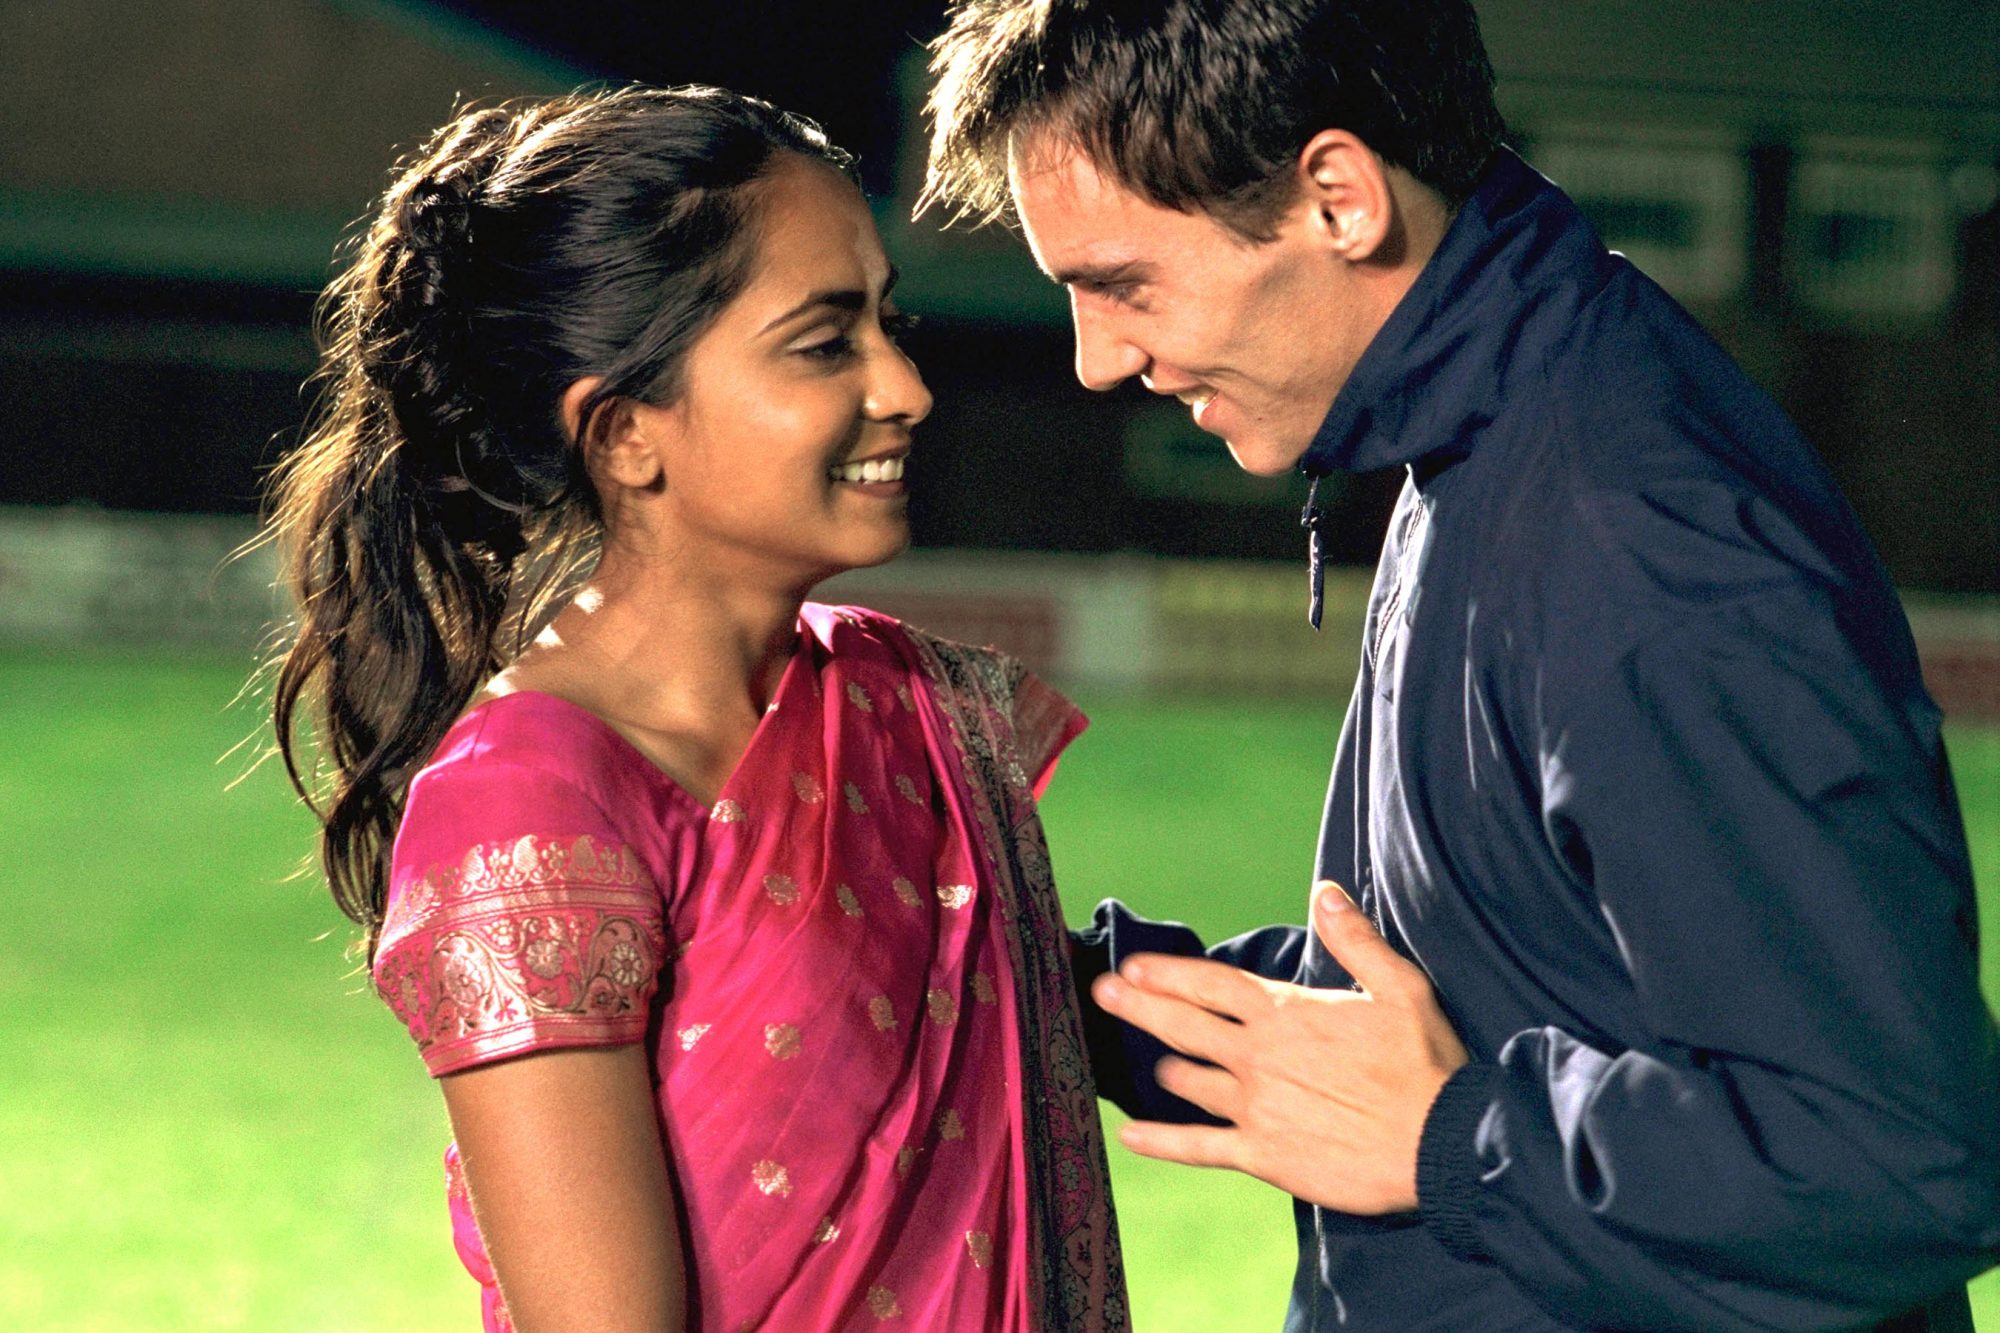 Bend It Like Beckham (2003)Parminder Nagra and Jonathan Rhys-Meyers.